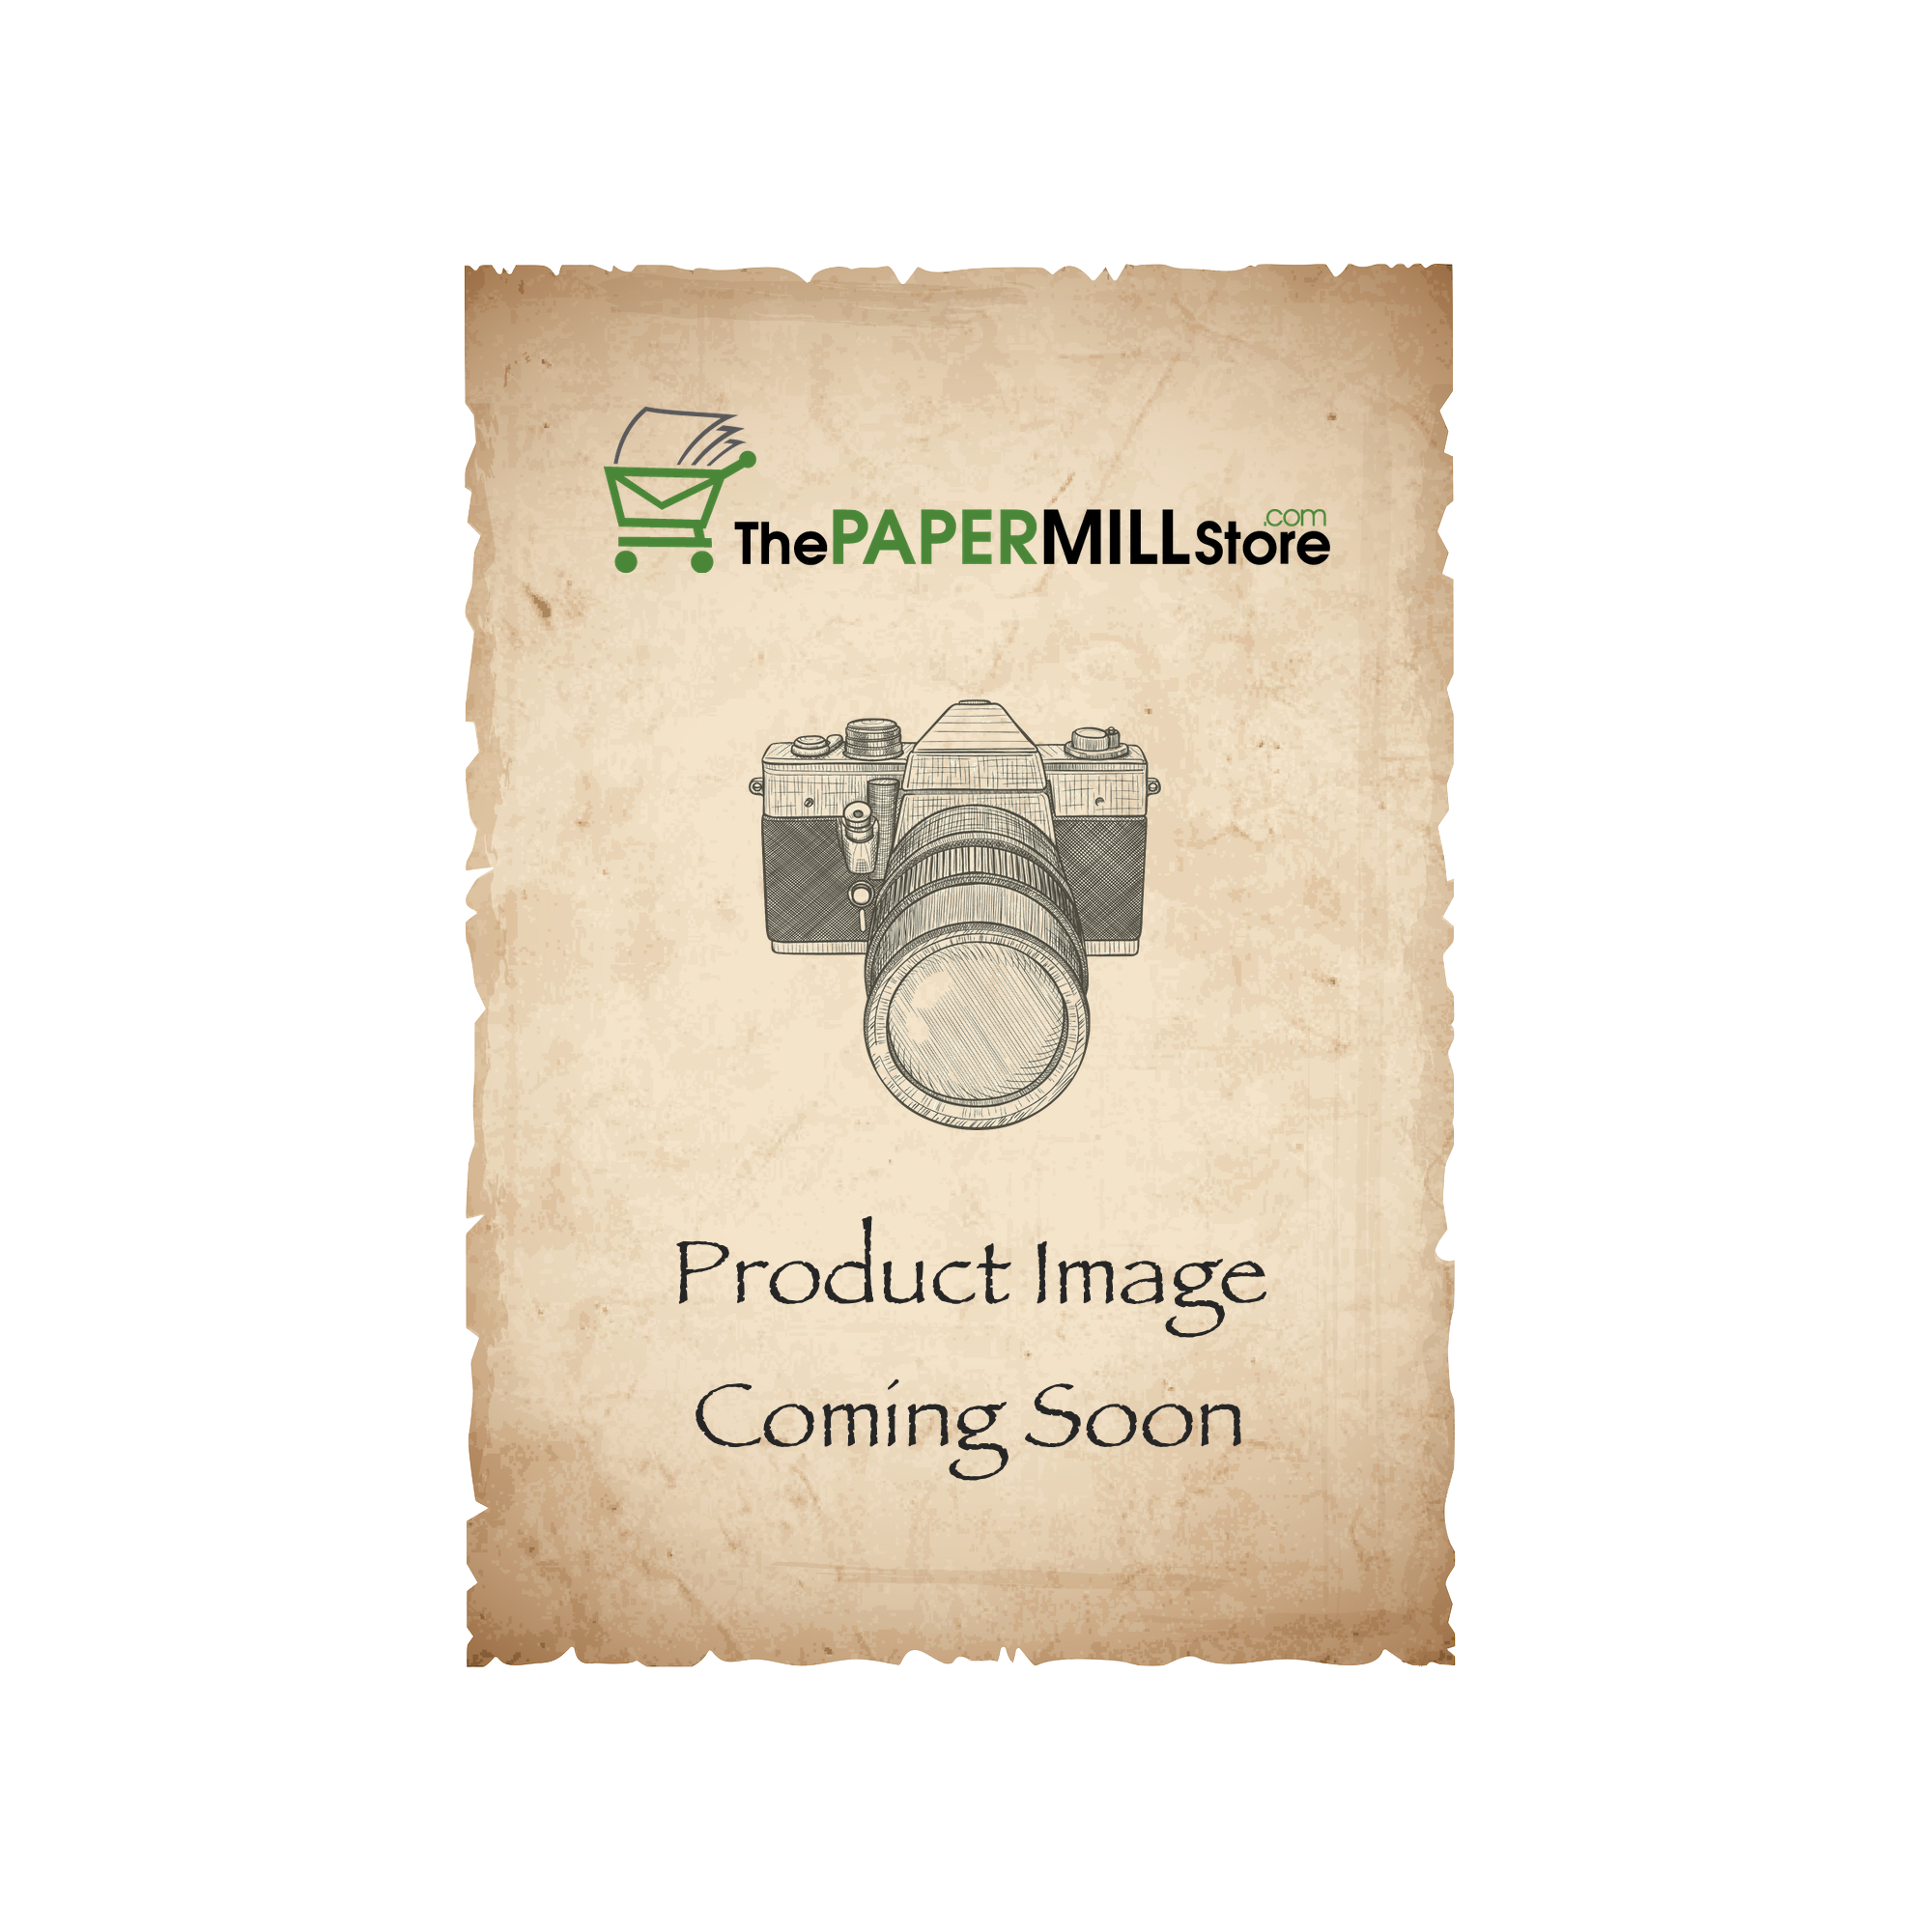 CLASSIC Laid Recycled Natural White Paper - 8 1/2 x 11 in 24 lb Writing Imaging Laid  100% Recycled Watermarked 500 per Ream